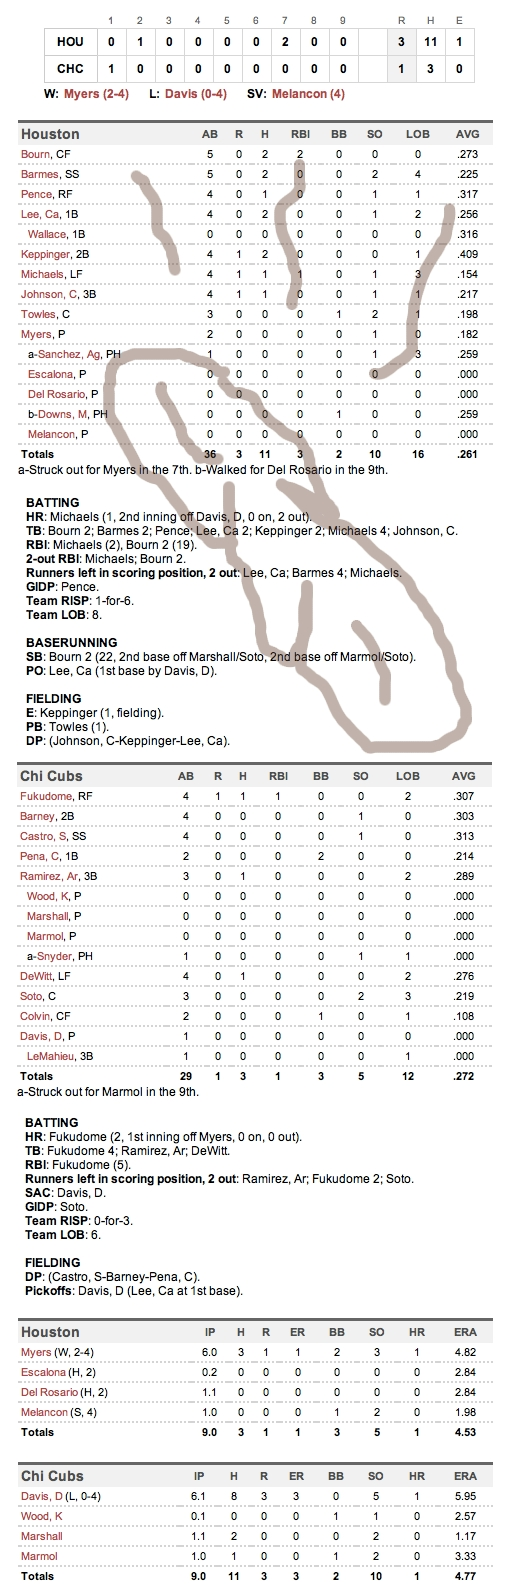 Enhanced Box Score: Astros 3, Cubs 1 – June 1, 2011